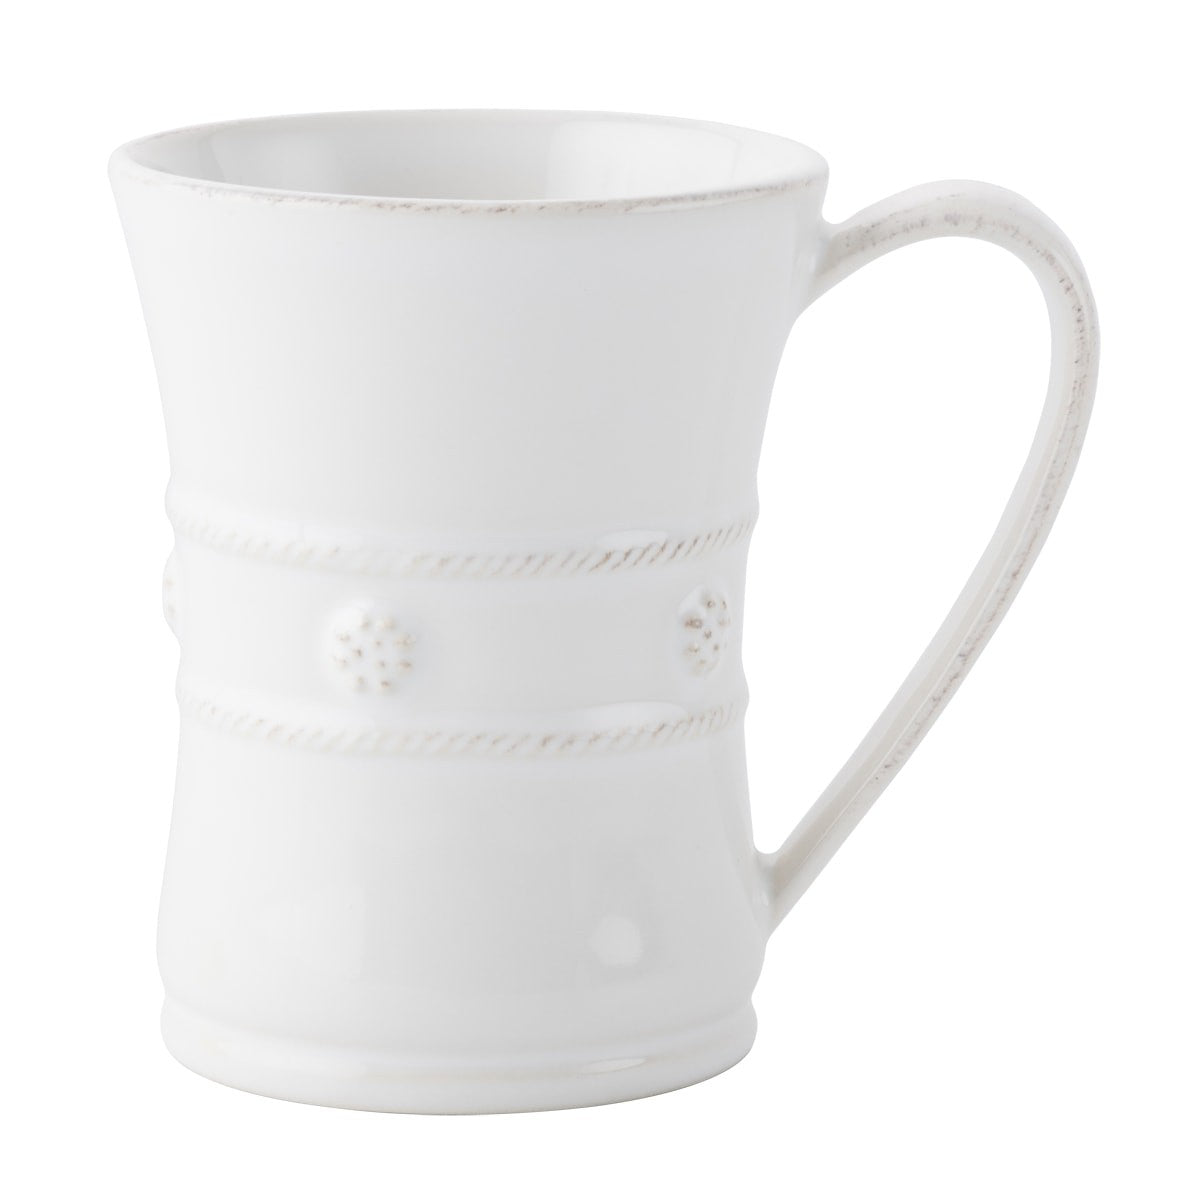 B & T Whitewash Dinnerware